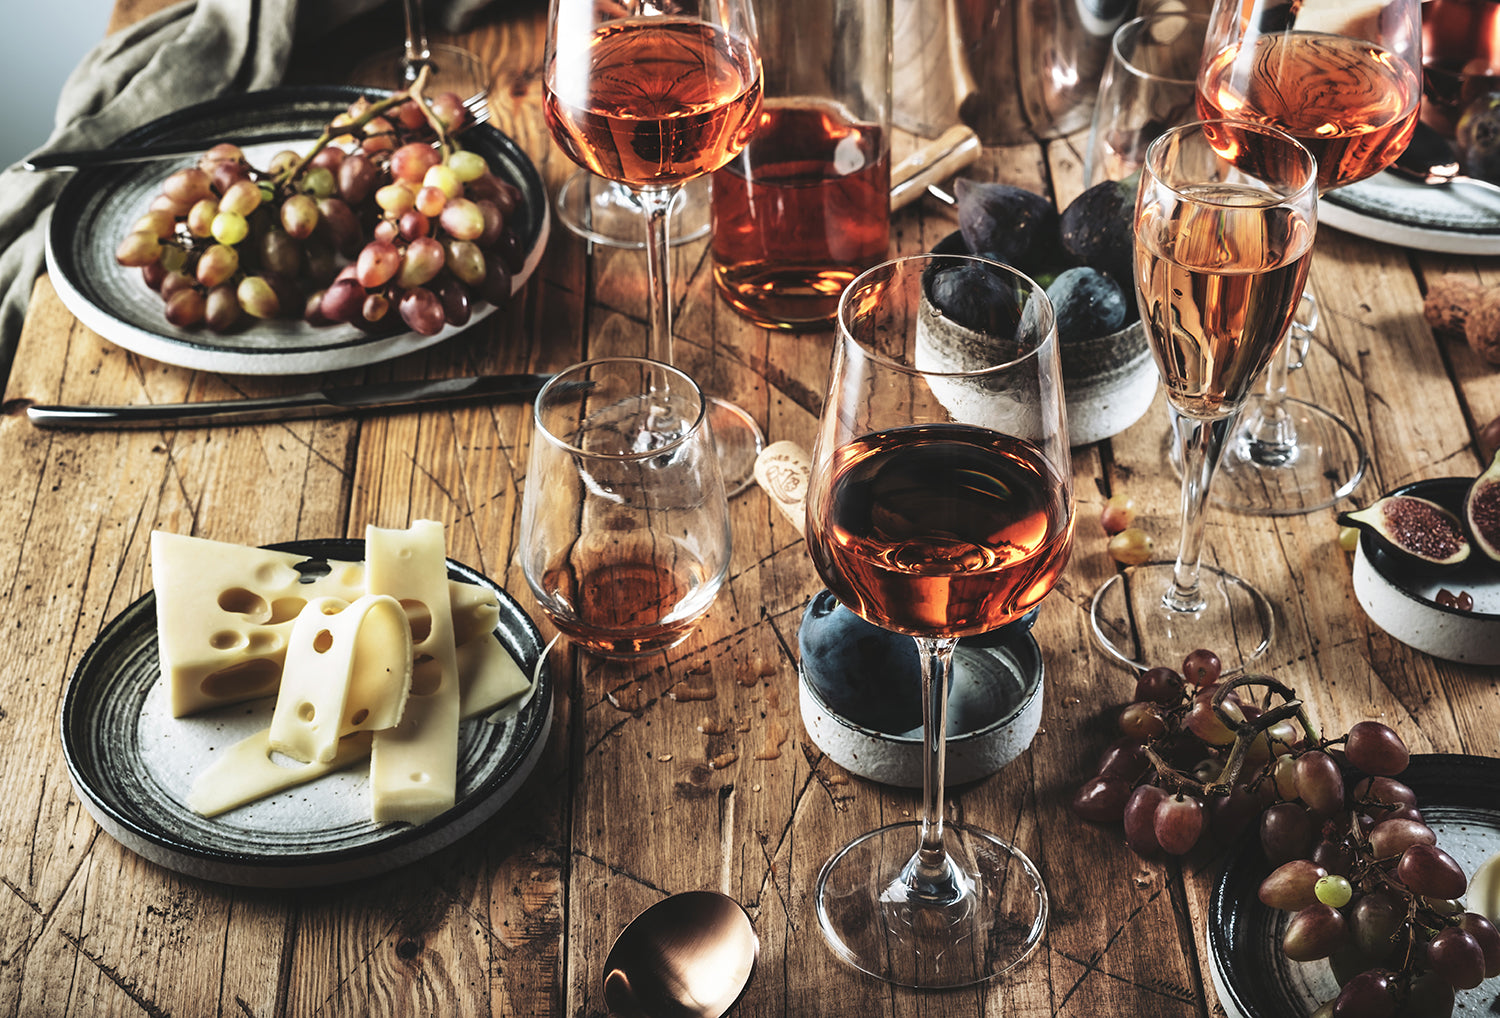 Grenache is versatile, it makes refreshing, food-friendly fruity rosés and sparkling wines as well.